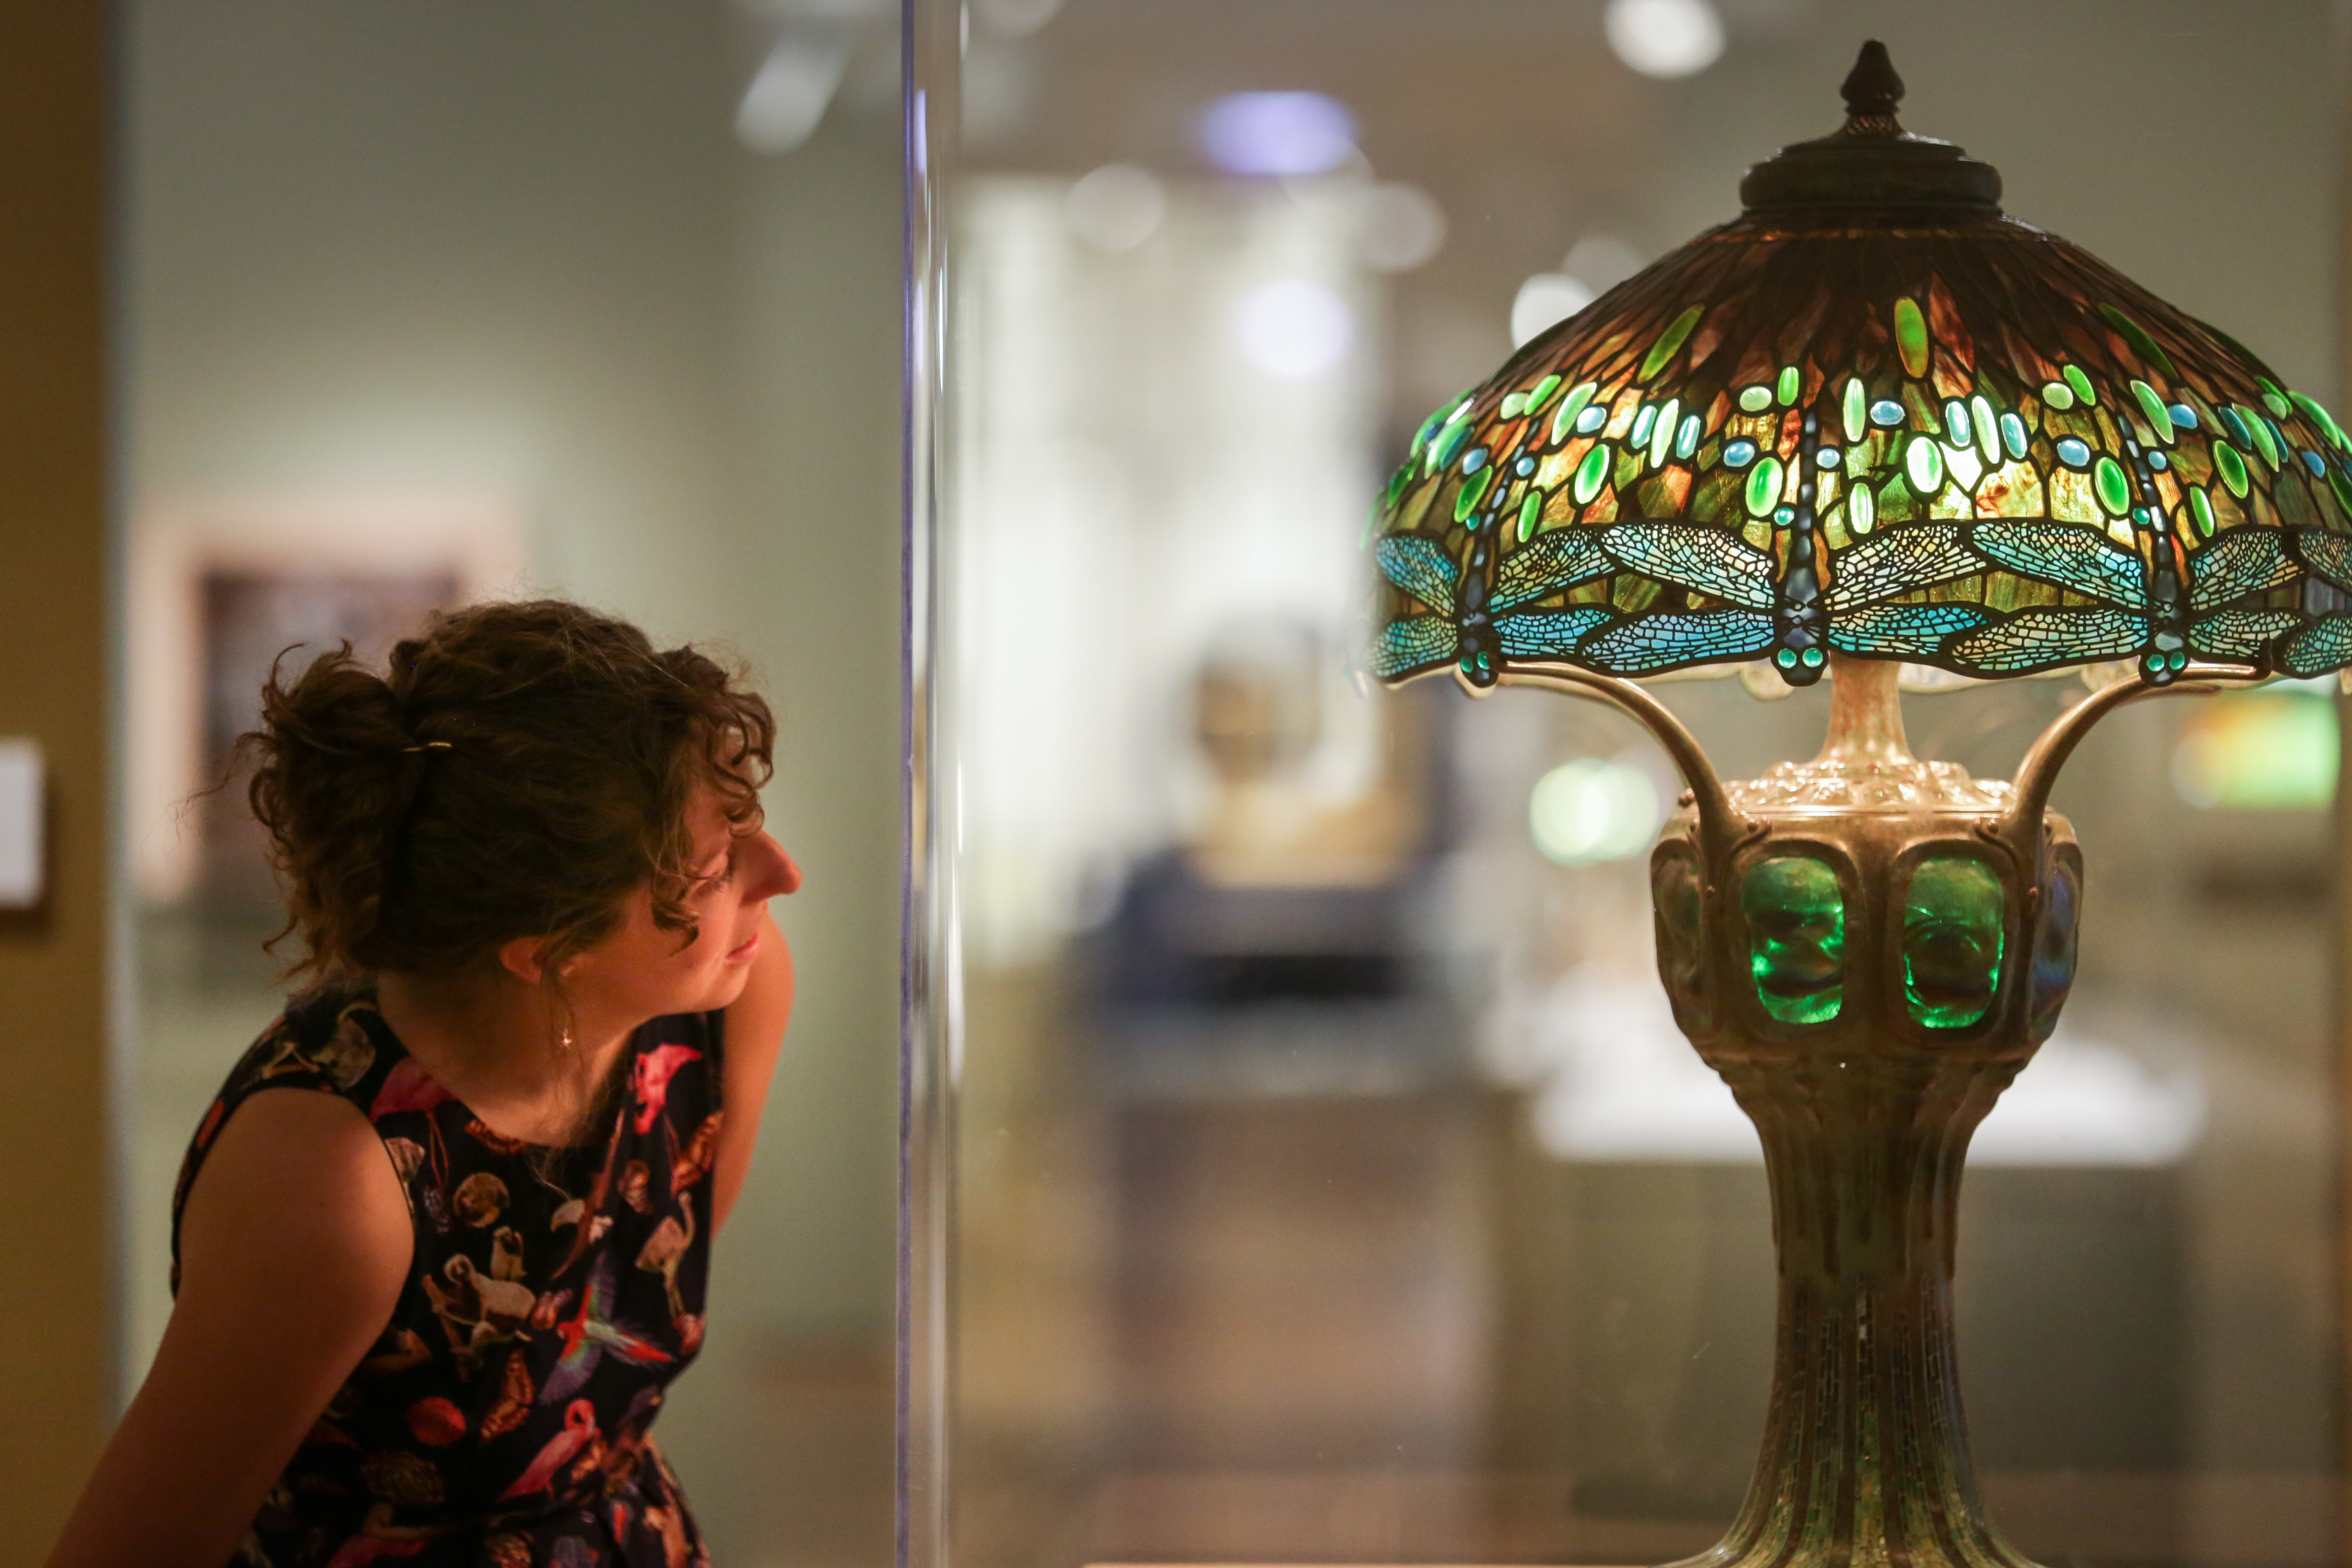 A woman looks at a stained glass lamp